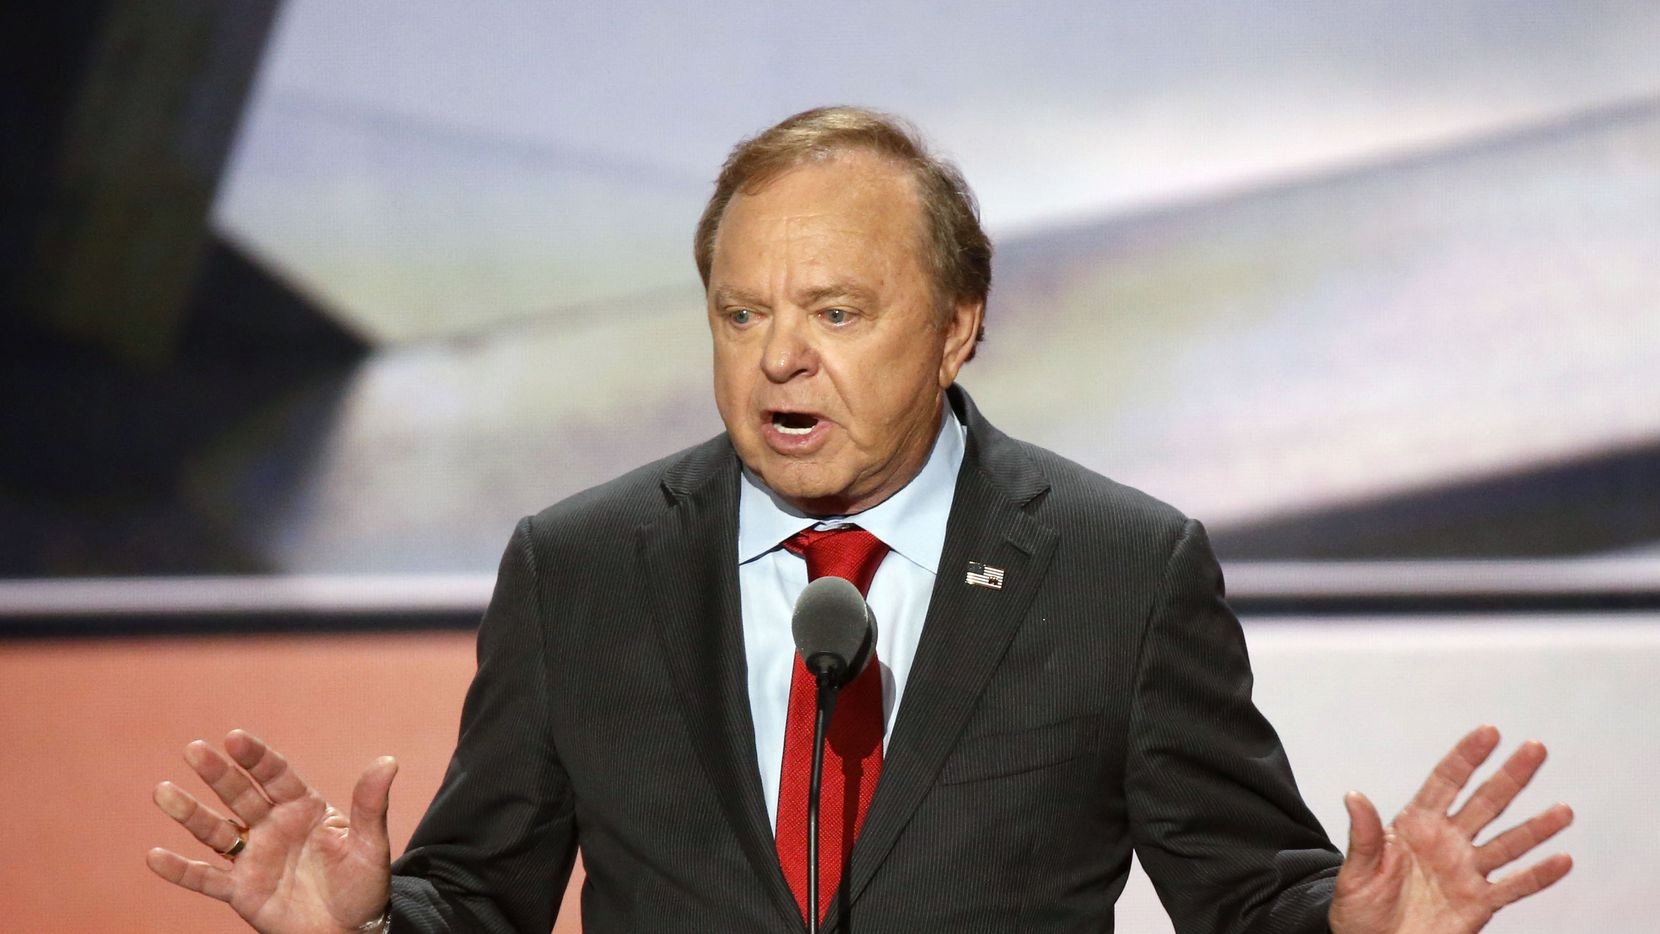 Continental Resources CEO, Harold Hamm speaks during the third day of the Republican National Convention on Wednesday, July 20, 2016. (Vernon Bryant/The Dallas Morning News)